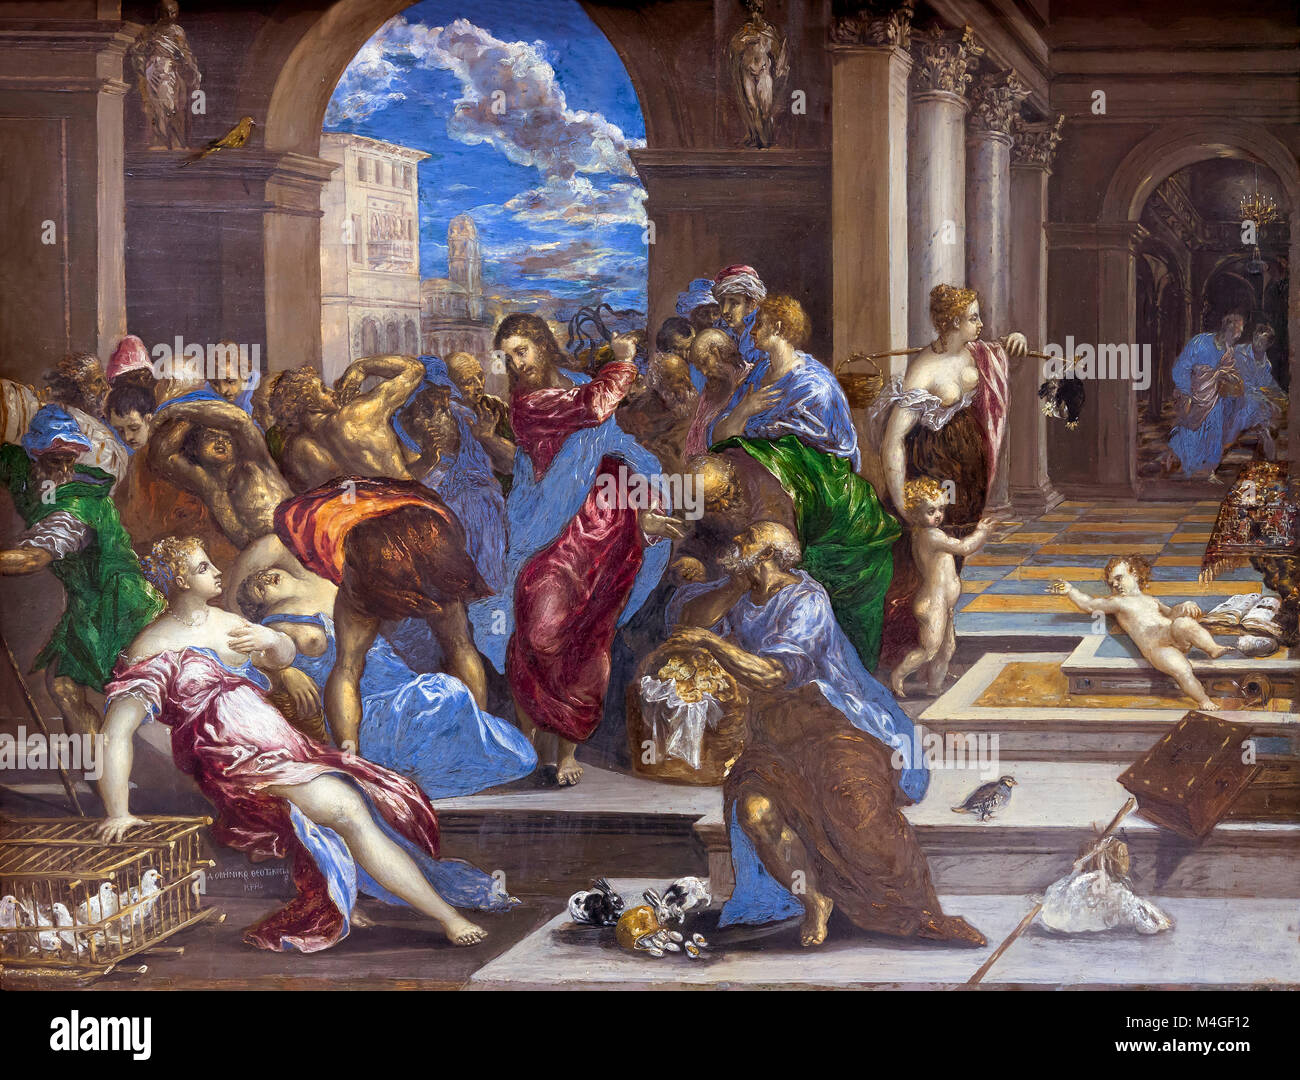 Christ Cleansing the Temple, El Greco, circa 1570, National Gallery of Art, Washington DC, USA, North America - Stock Image